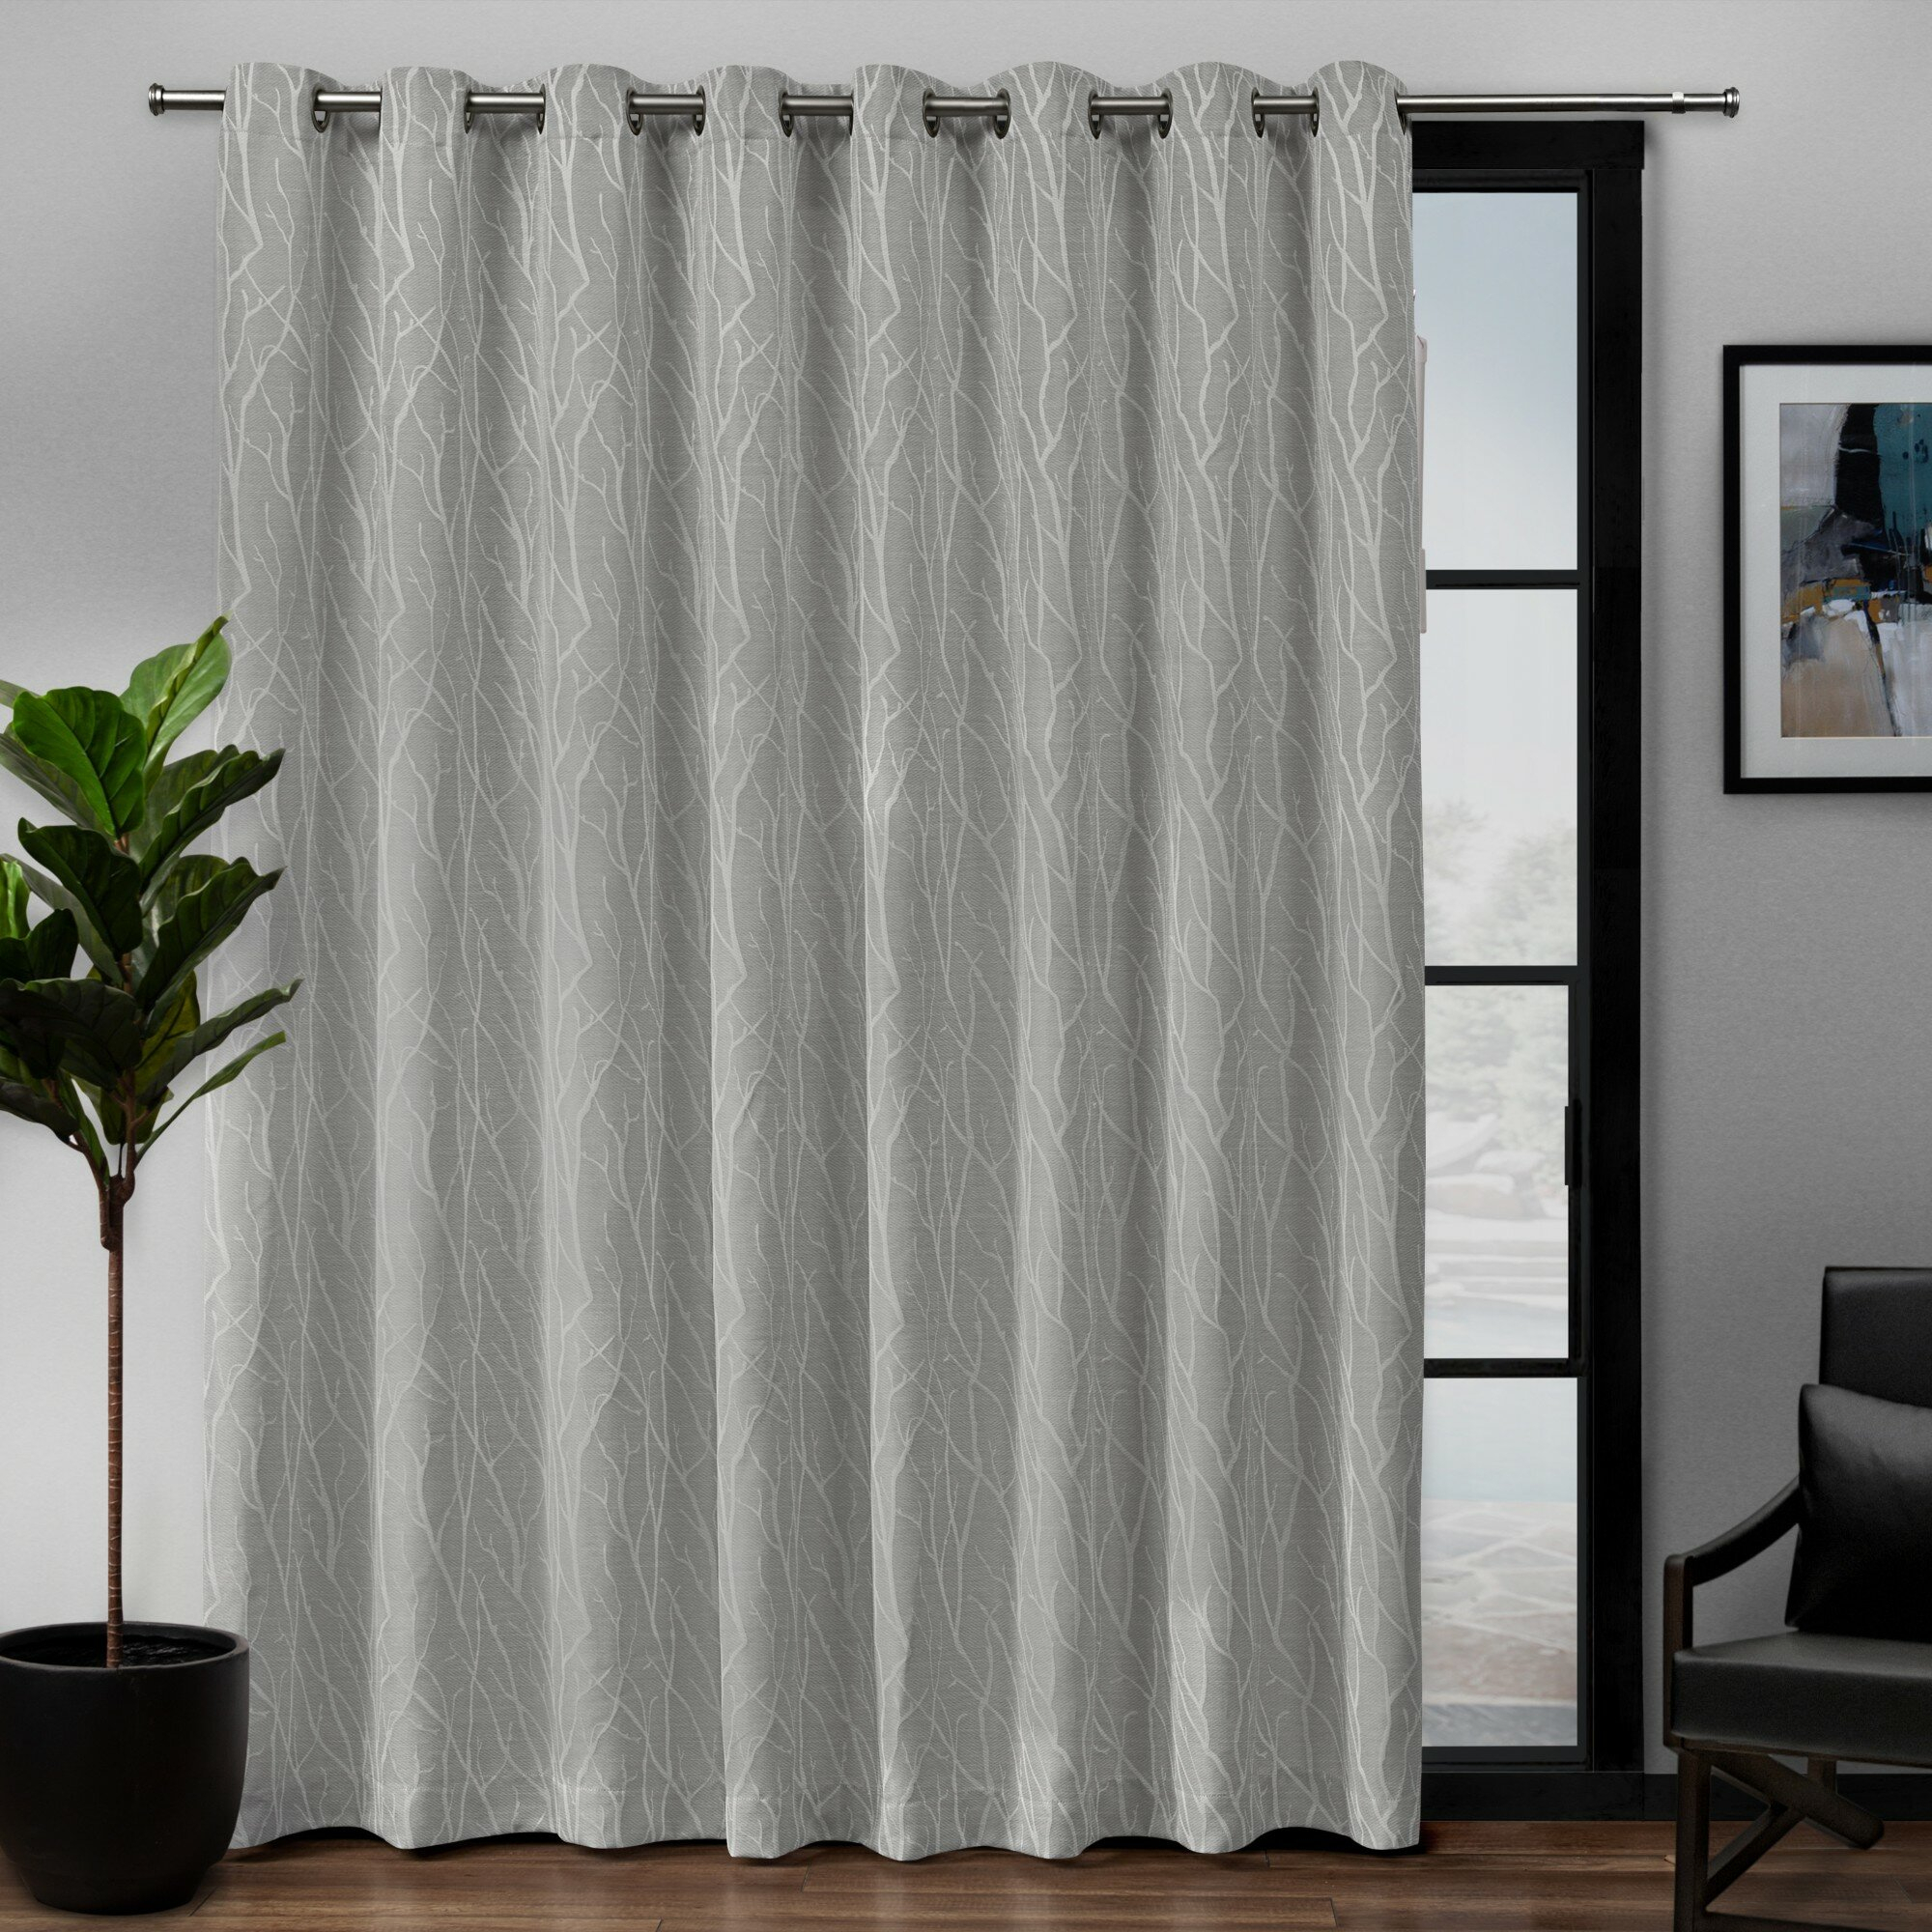 Prower Patio Woven Blackout Thermal Grommet Single Curtain Panel With Regard To Grommet Blackout Patio Door Window Curtain Panels (View 10 of 20)